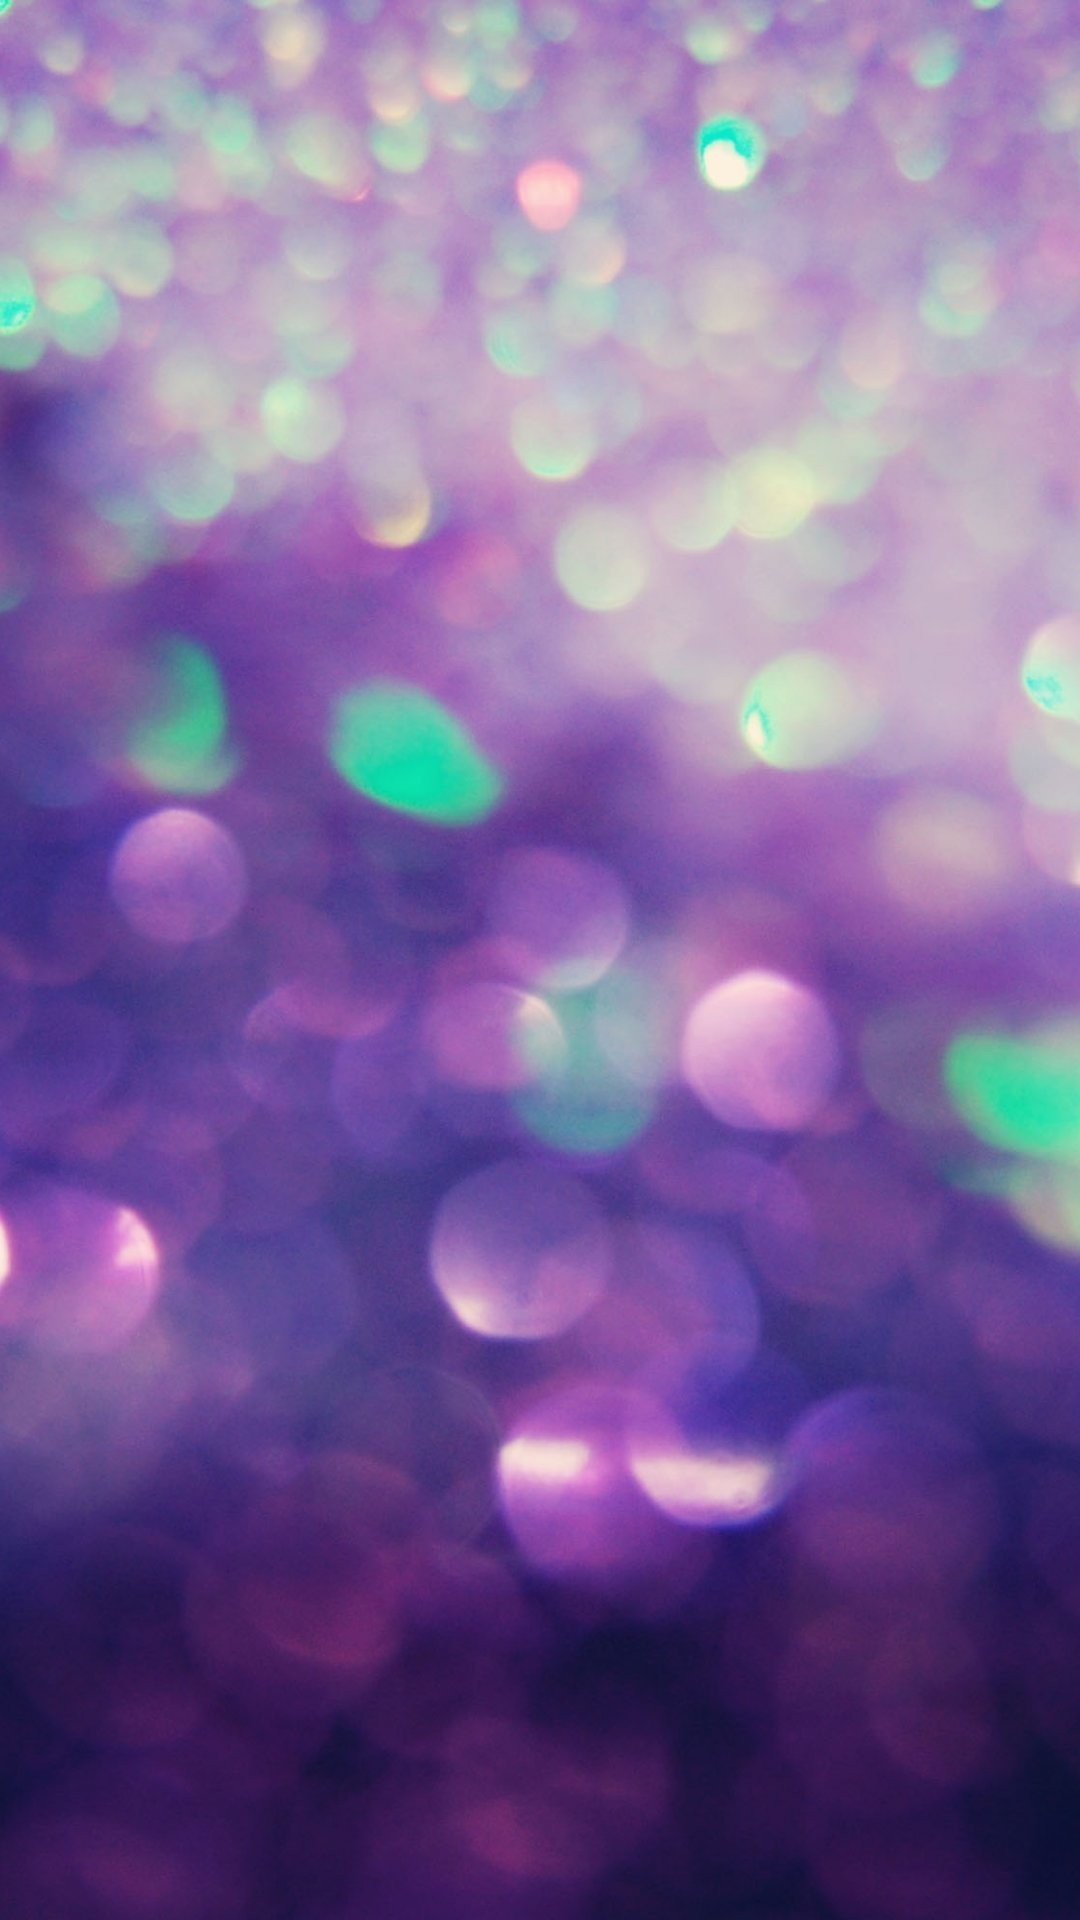 Sparkly iPhone 6 Plus Wallpaper 24031 – Abstract iPhone 6 Plus Wallpapers